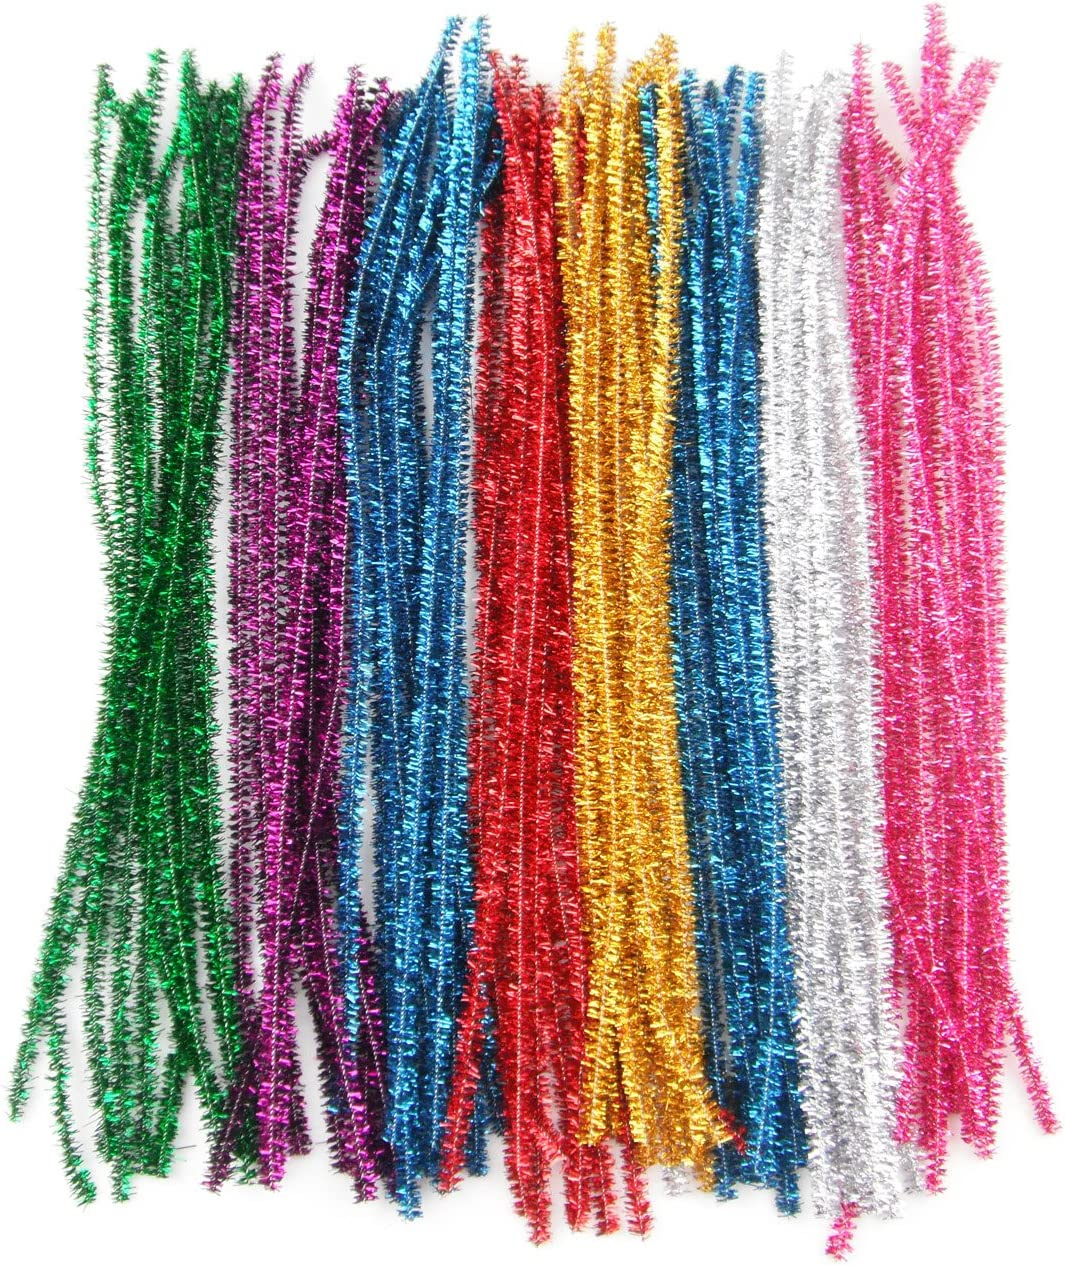 300Pcs Glitter Sparkle Pipe Cleaners Tinsel Chenille Stems,10 Colors Metallic Pipe Cleaner for DIY Crafts,Arts,Wedding,Home,Party,Holiday Decoration 6 mm x 12 Inch